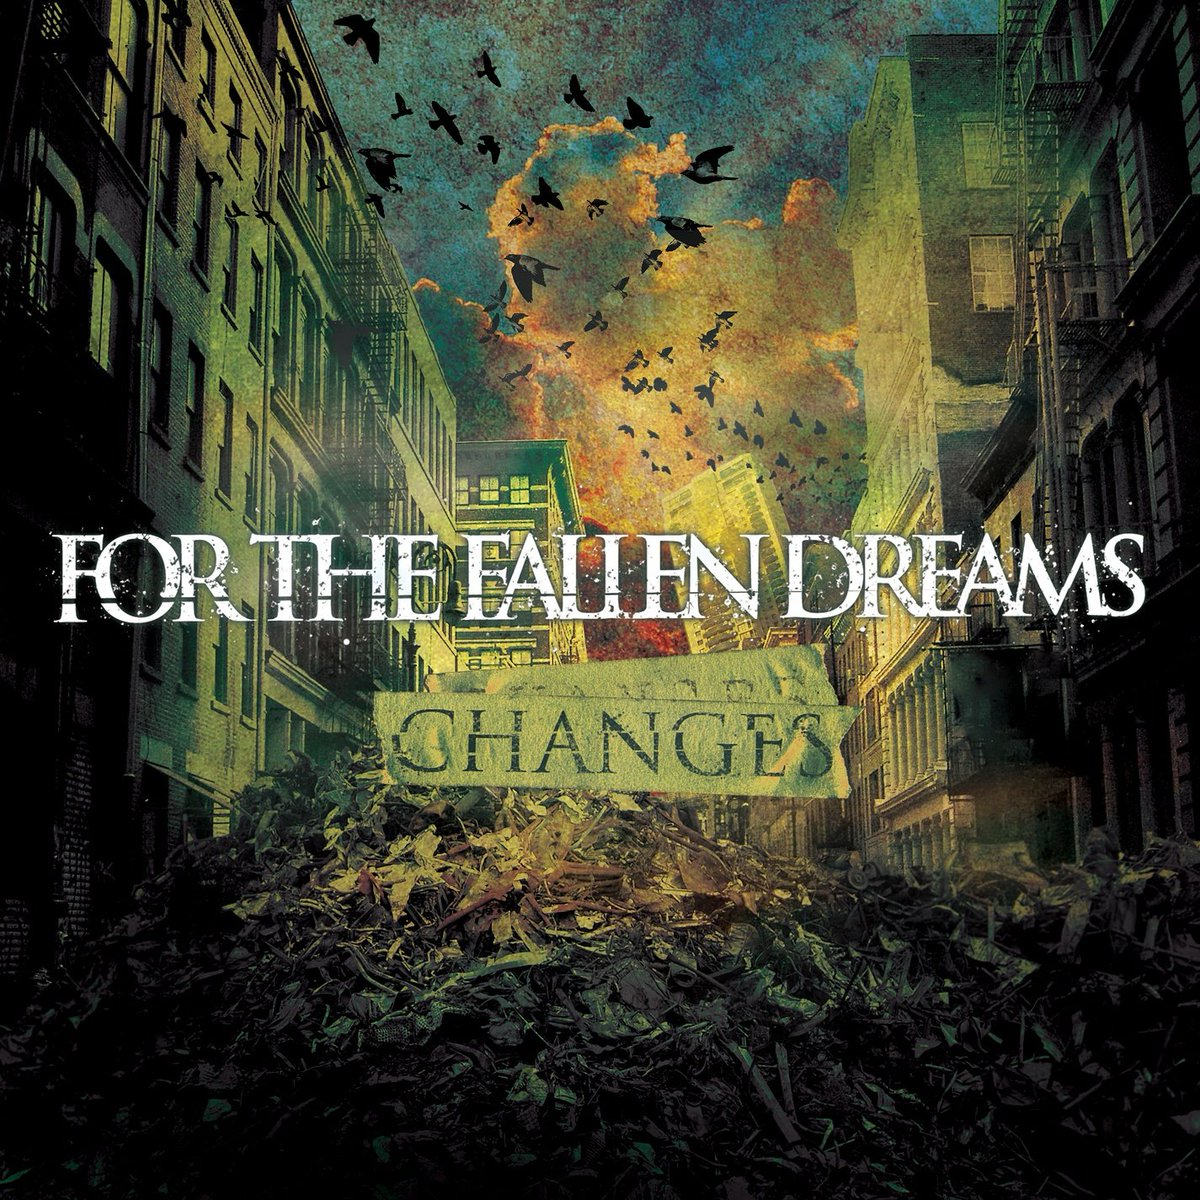 Changes is 9 years old today. Released January 8, 2008 by @riserecords.  Onto the next one. https://t.co/g6qhjCS8WC